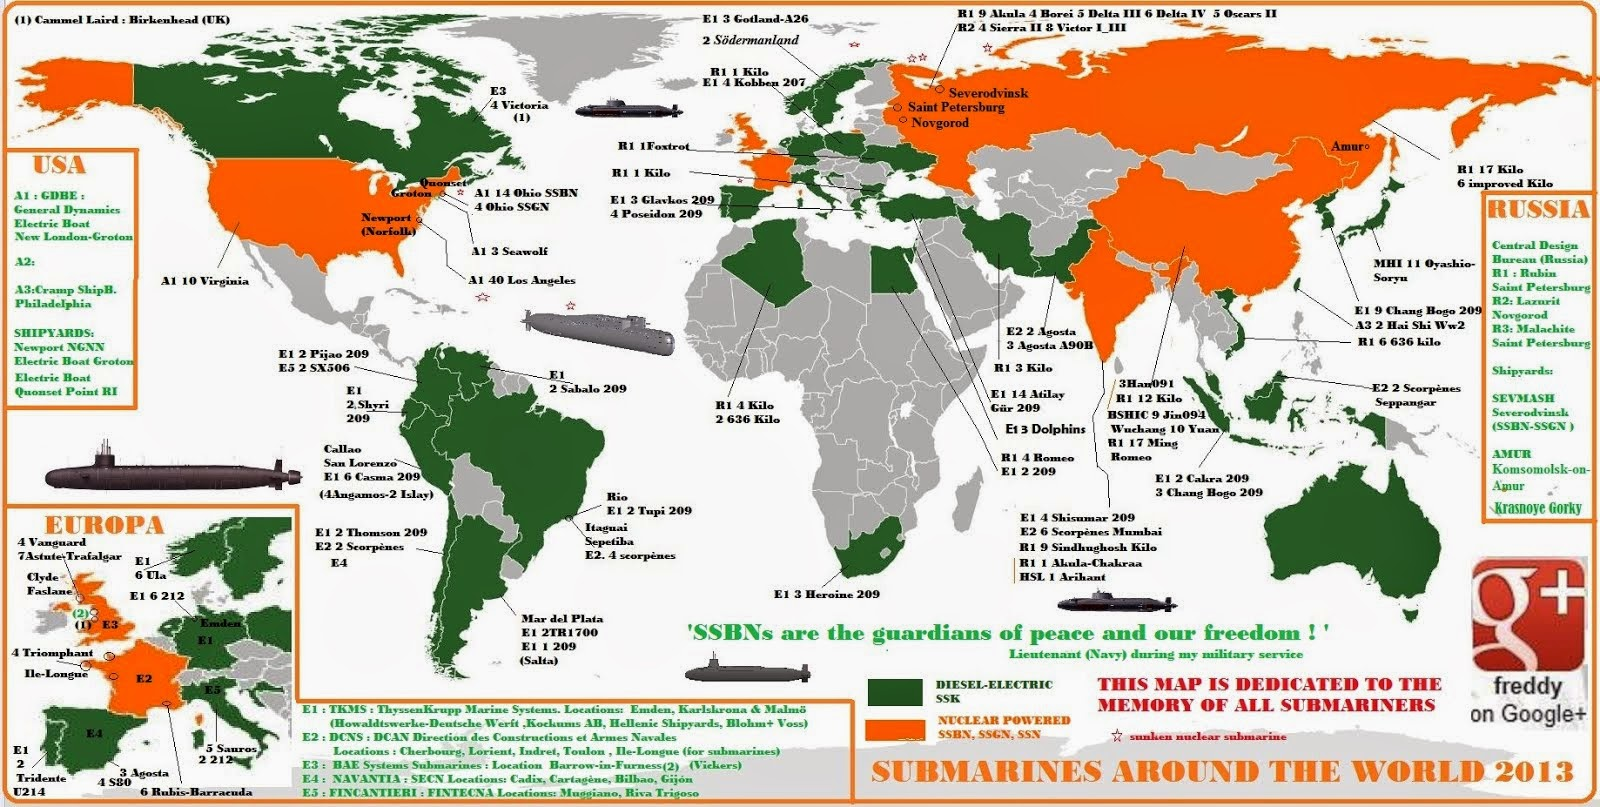 Subs Around the World